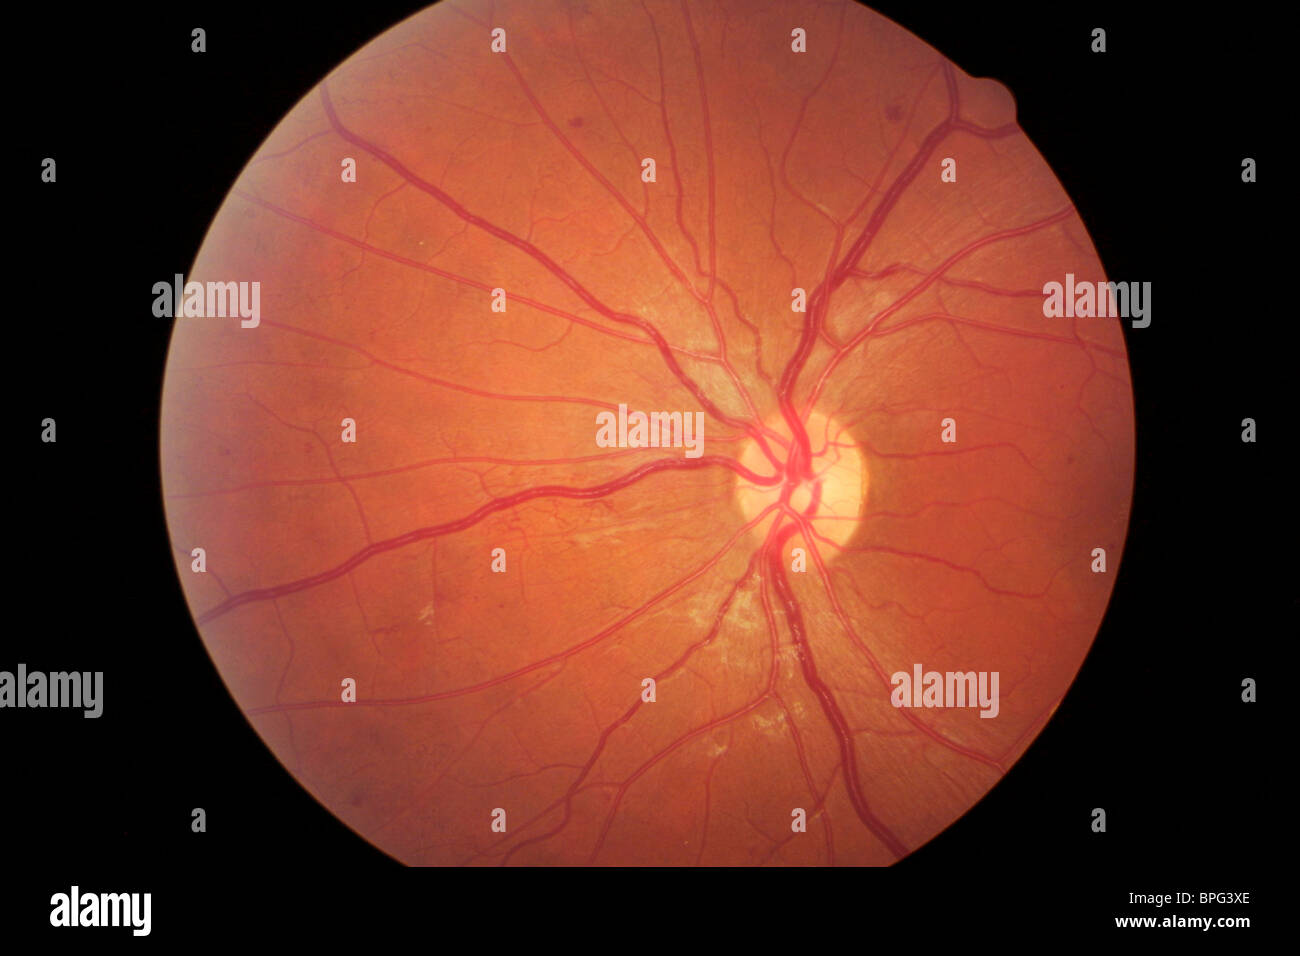 Proliferative Diabetic Retinopathy can be seen in the eye with an ophthalmoscope as neovascularisation. - Stock Image